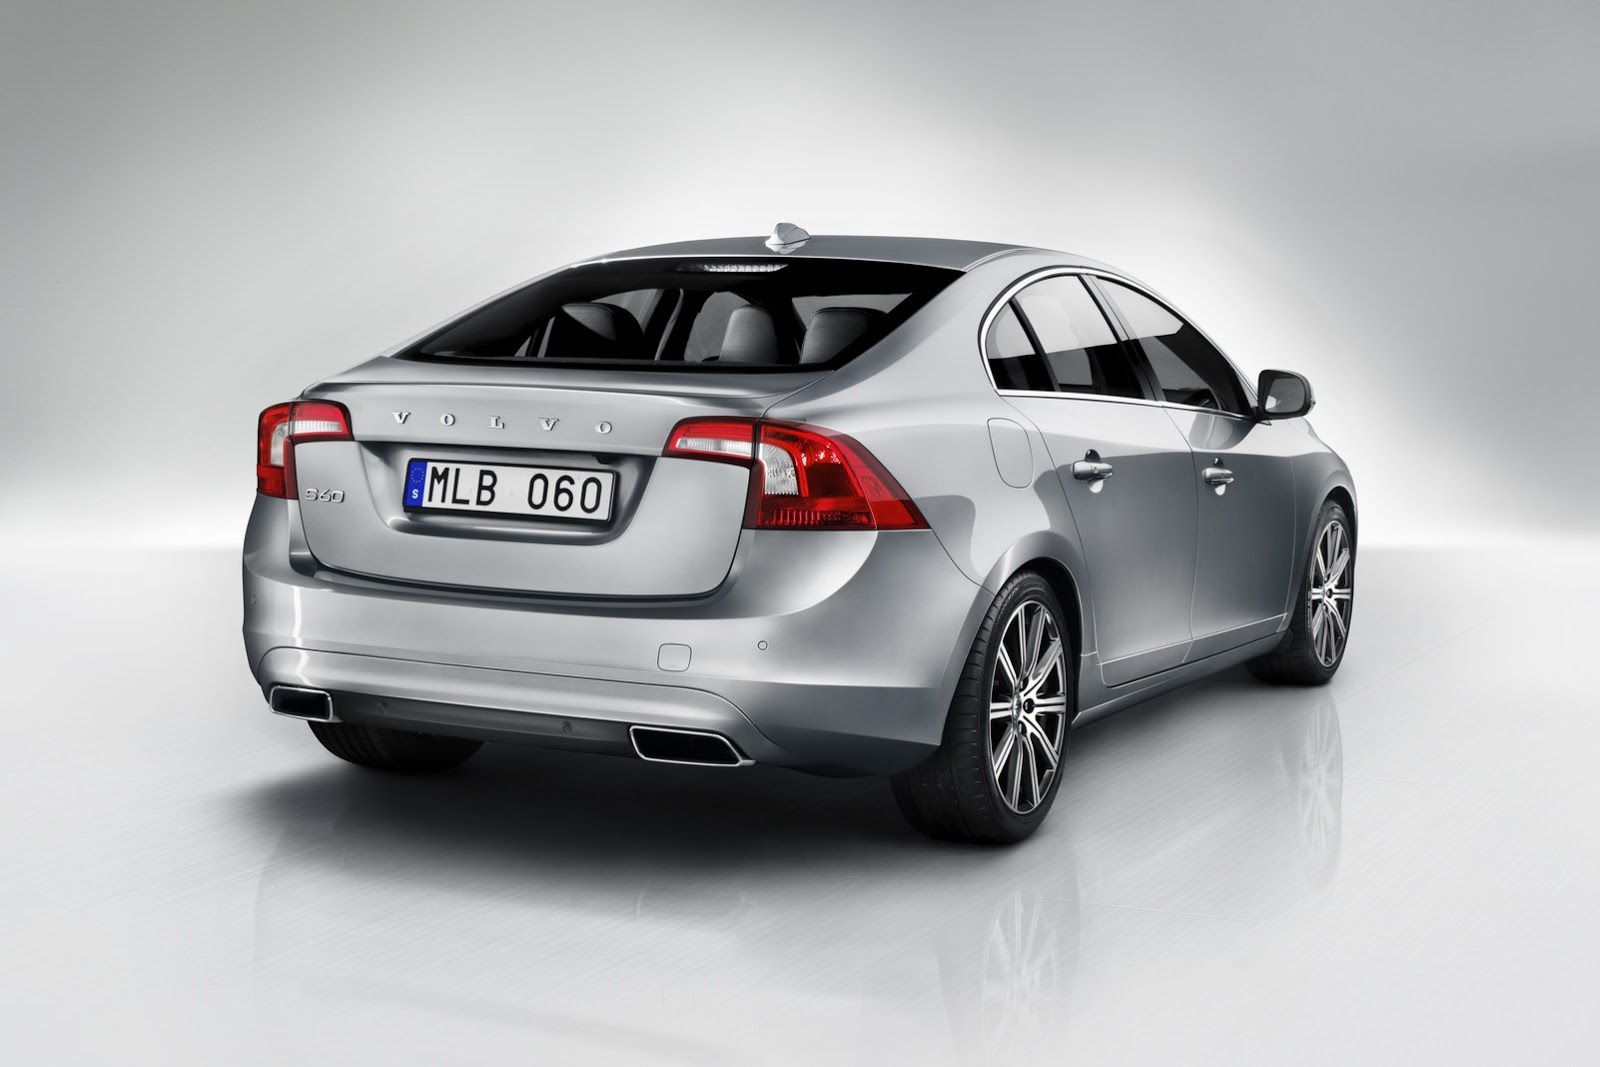 Volvo Exhibits New S60 V60 And Xc60 Models Autoevolution